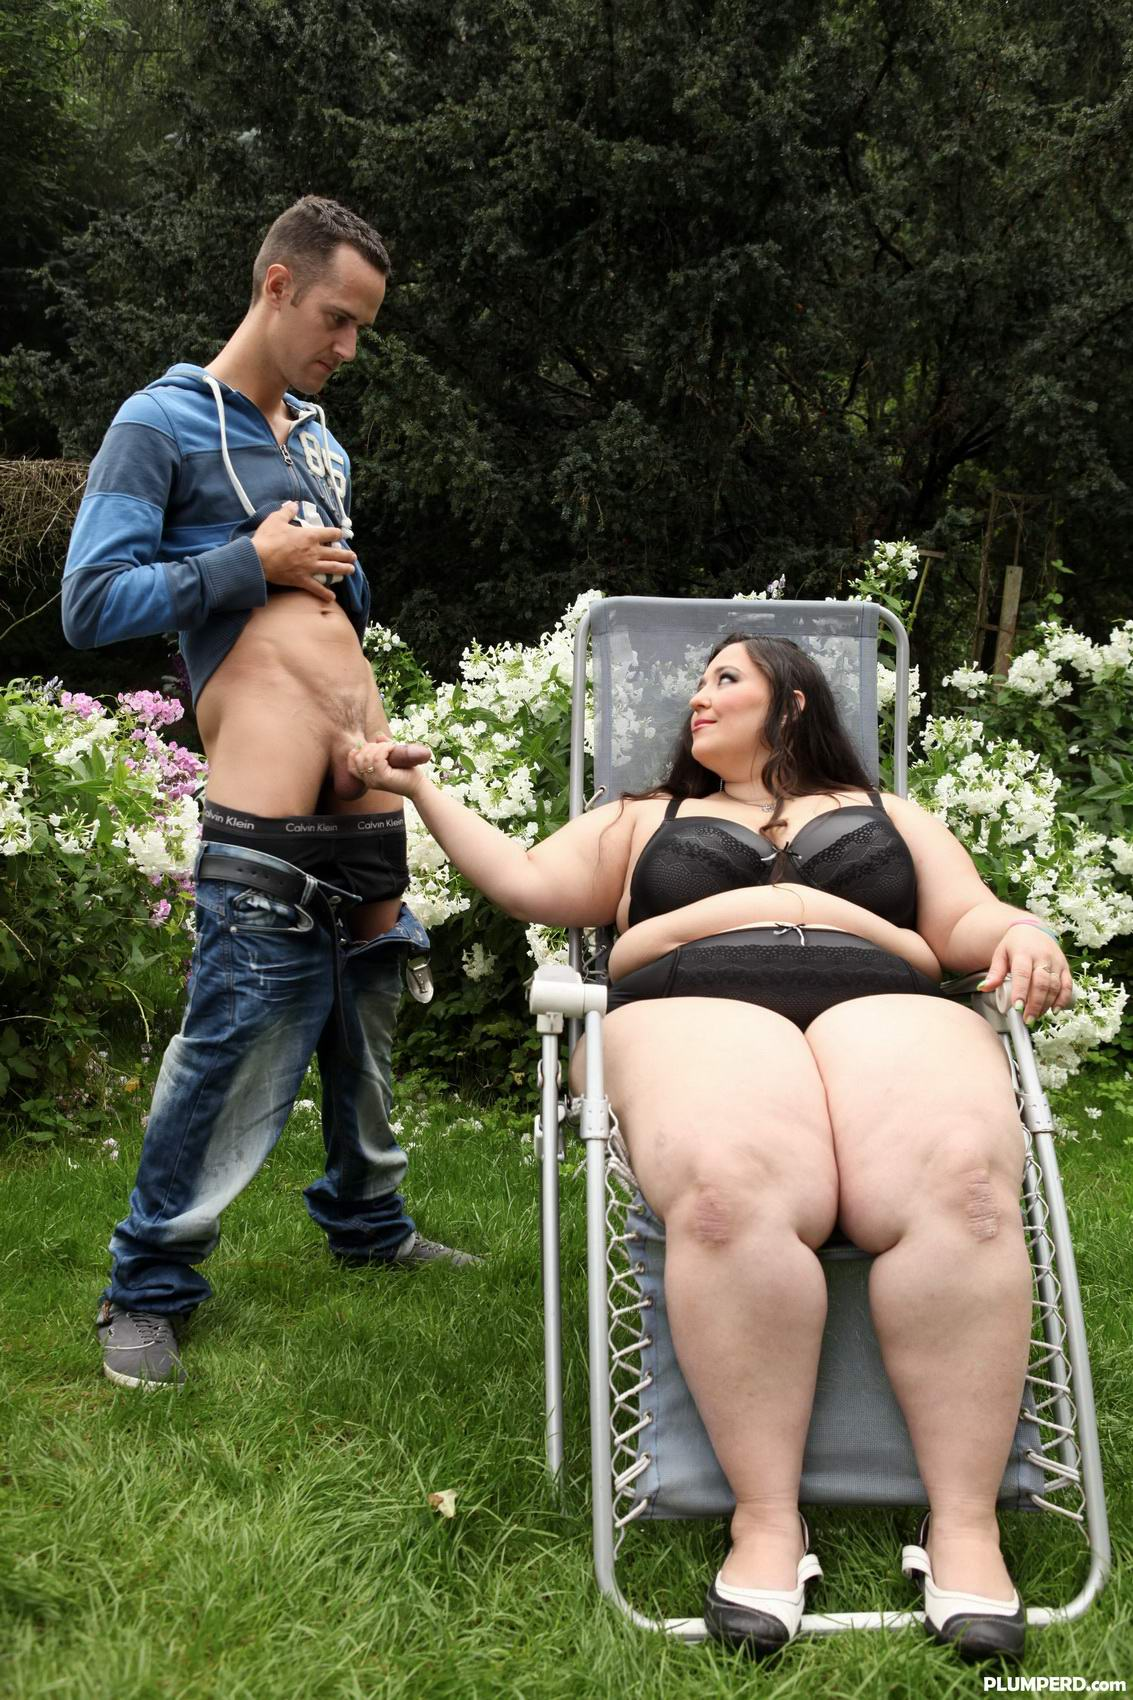 femdom facesitting in the outdoors with a huge ass bbw who loves